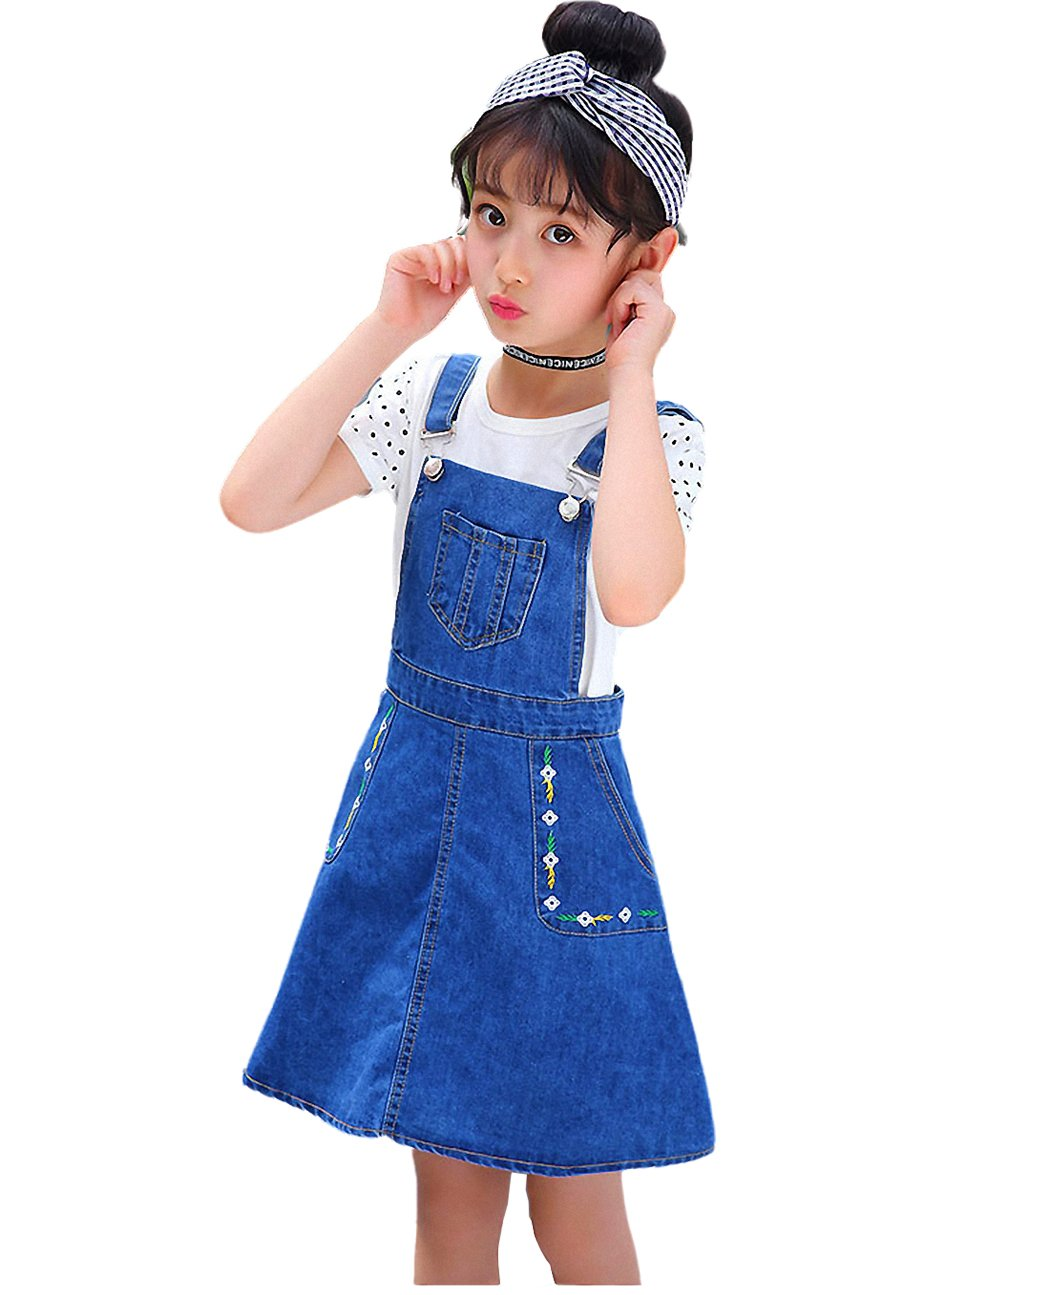 Kidscool Girls Big Bibs Small Flowers Decor Summer Jeans Overalls Dress,Blue,4-5 Years